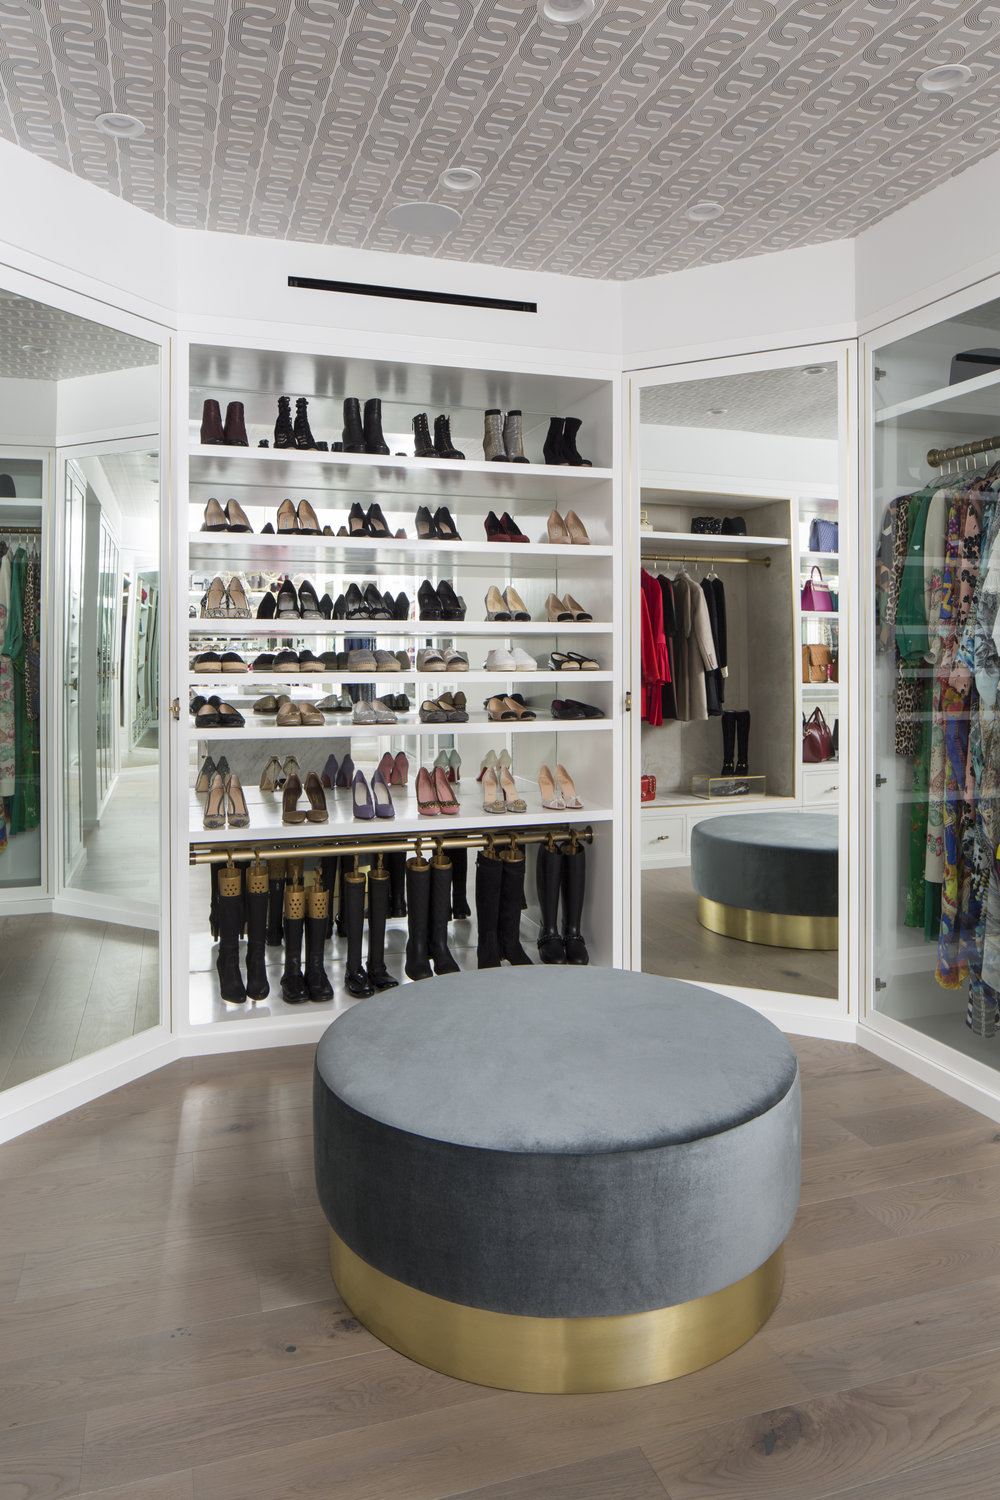 CORNER MIRRORED CABINETS CONCEAL ADDITIONAL HANGING SPACE FOR THE CLIENT'S SEASONAL ITEMS, AND A FLOOR TO CEILING SHOE DISPLAY CREATES THE ULTIMATE IN-HOME BOUTIQUE.